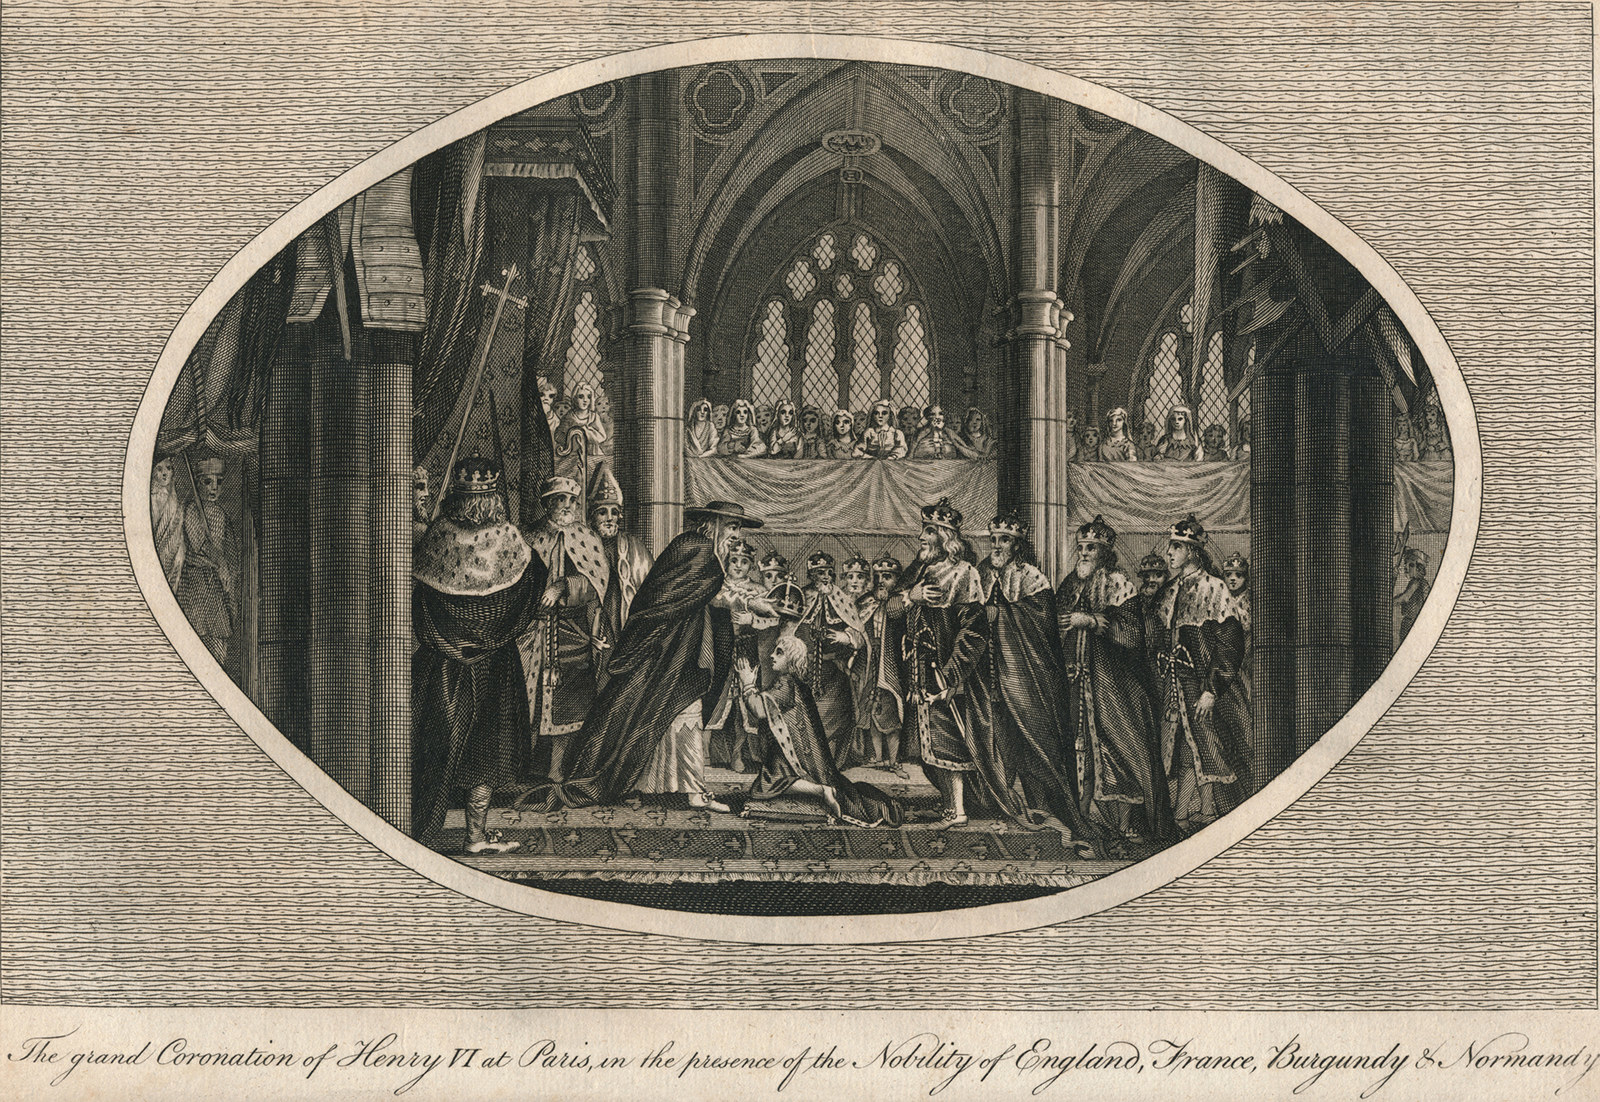 An artist's rendering of Henry VI's French coronation at Notre Dame in 1431 (artist unknown).